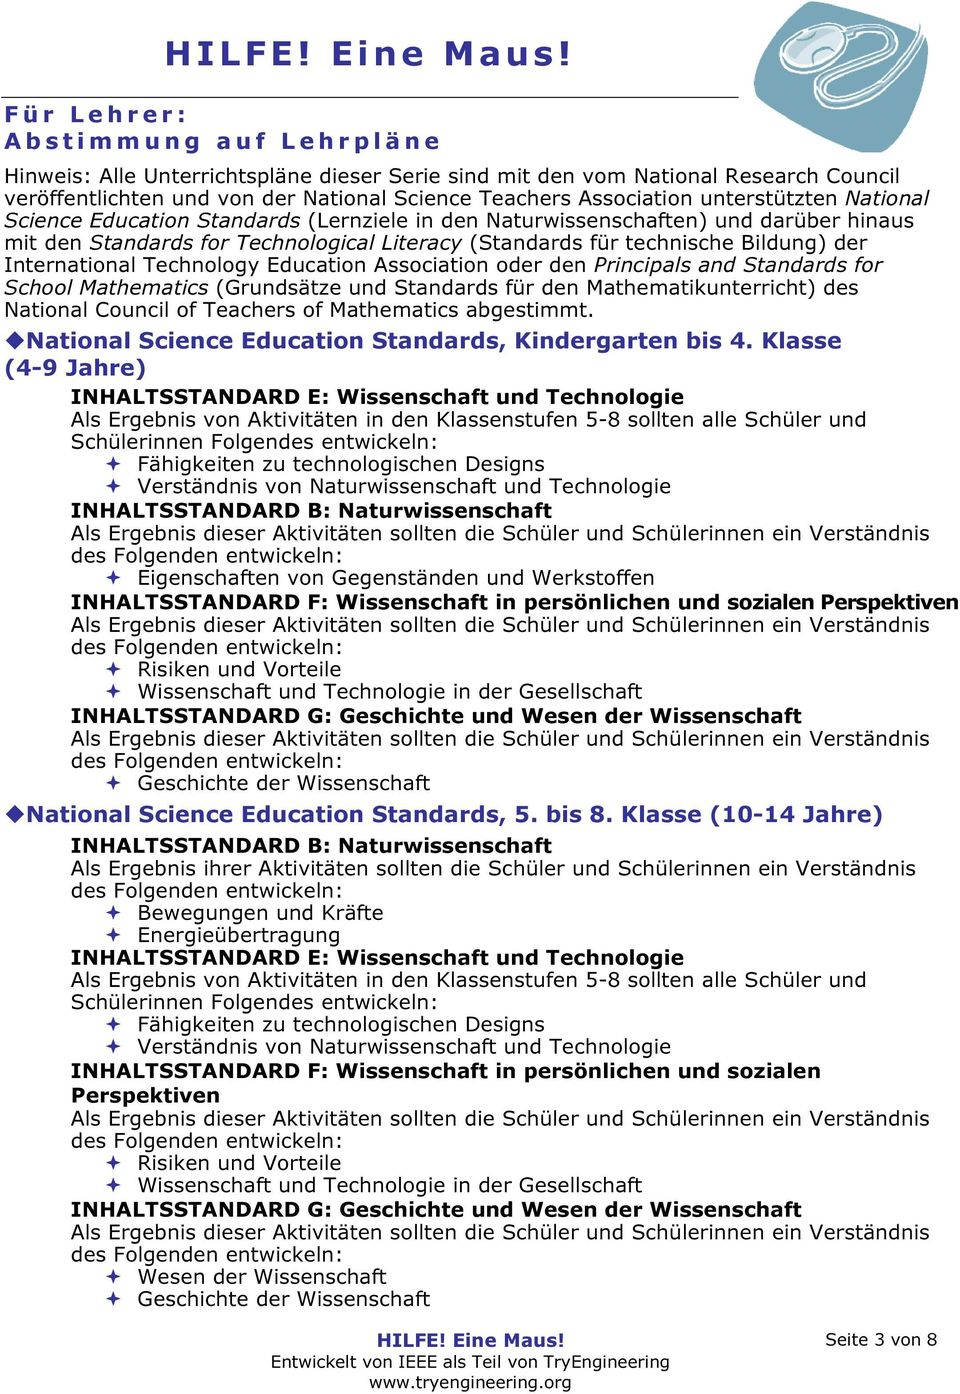 International Technology Education Association oder den Principals and Standards for School Mathematics (Grundsätze und Standards für den Mathematikunterricht) des National Council of Teachers of